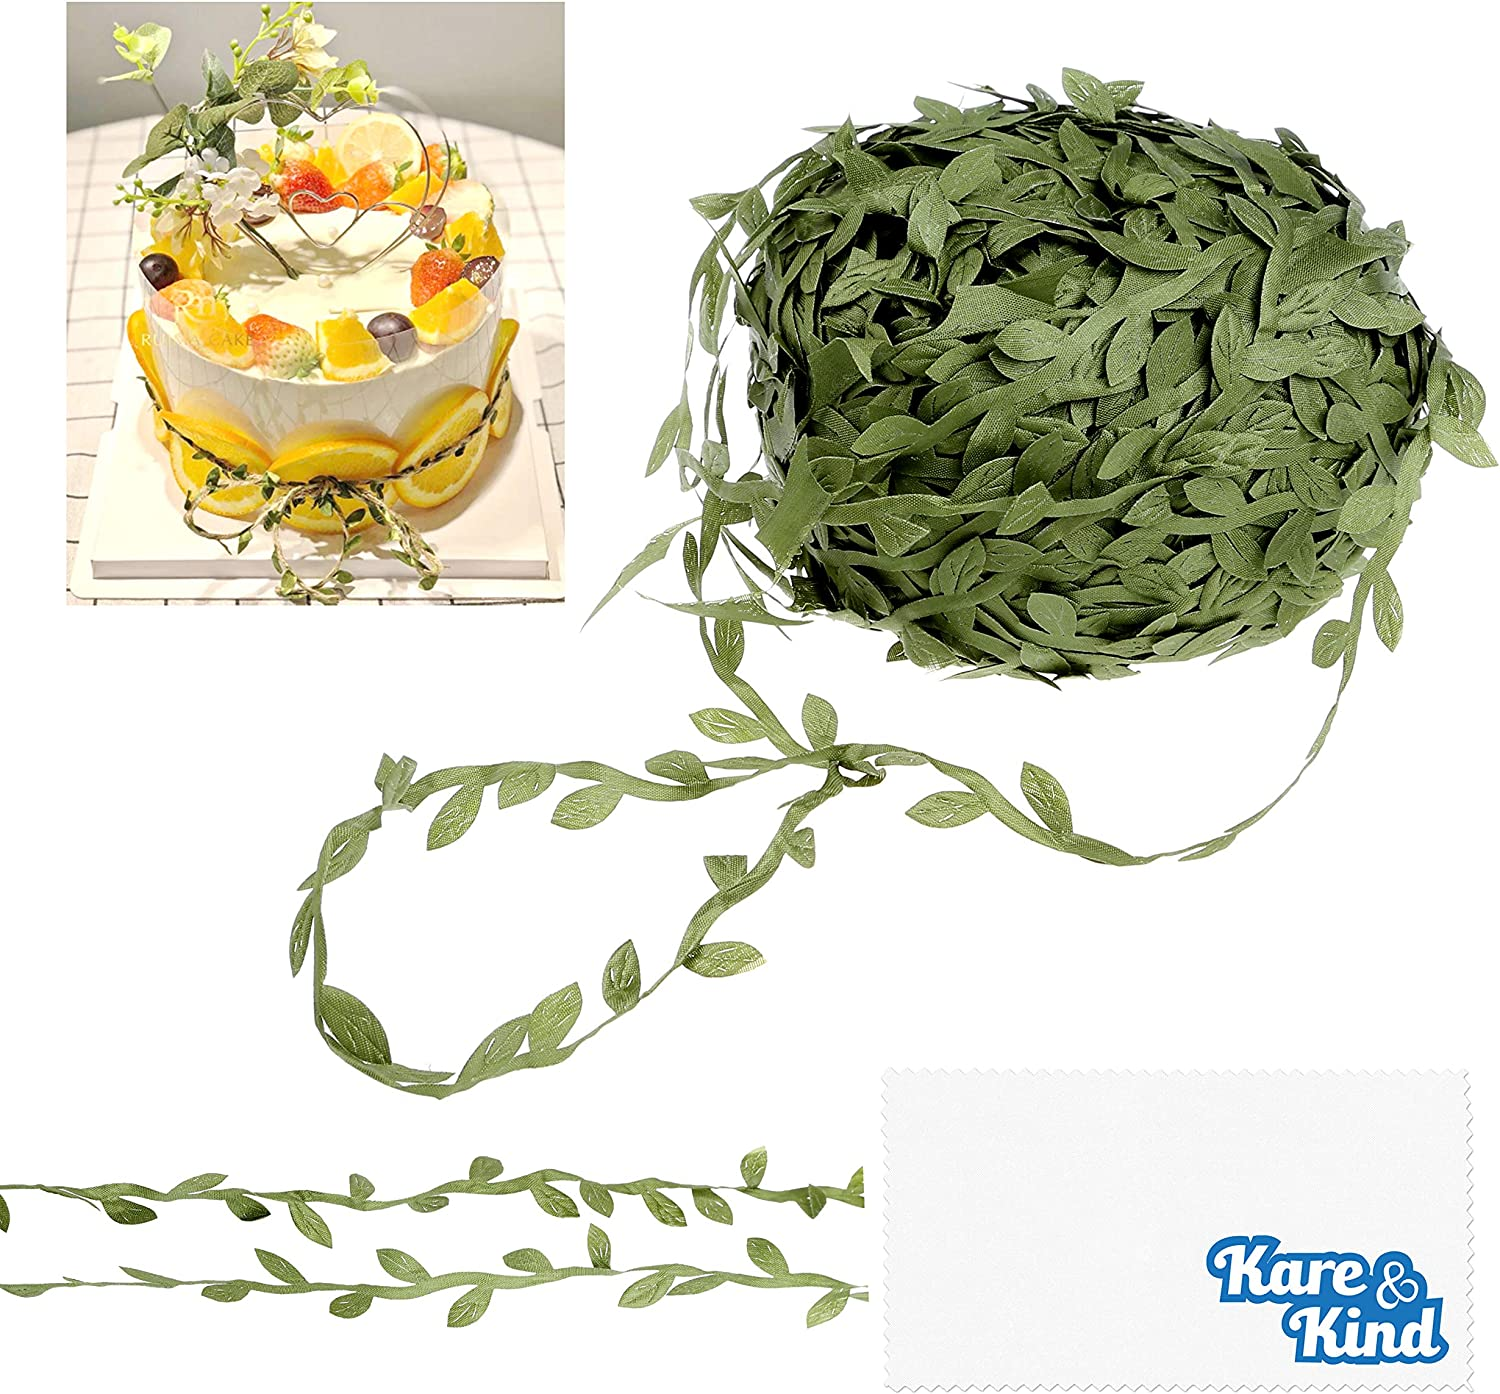 Kare & Kind Artificial Vine - 80 Meters (262 Ft.) - Green Faux Hanging Plant Leaves - for Home, Office, Party, Wedding and Christmas Decoration - DIY, Arts, Crafts - Wall Decor, Ribbon